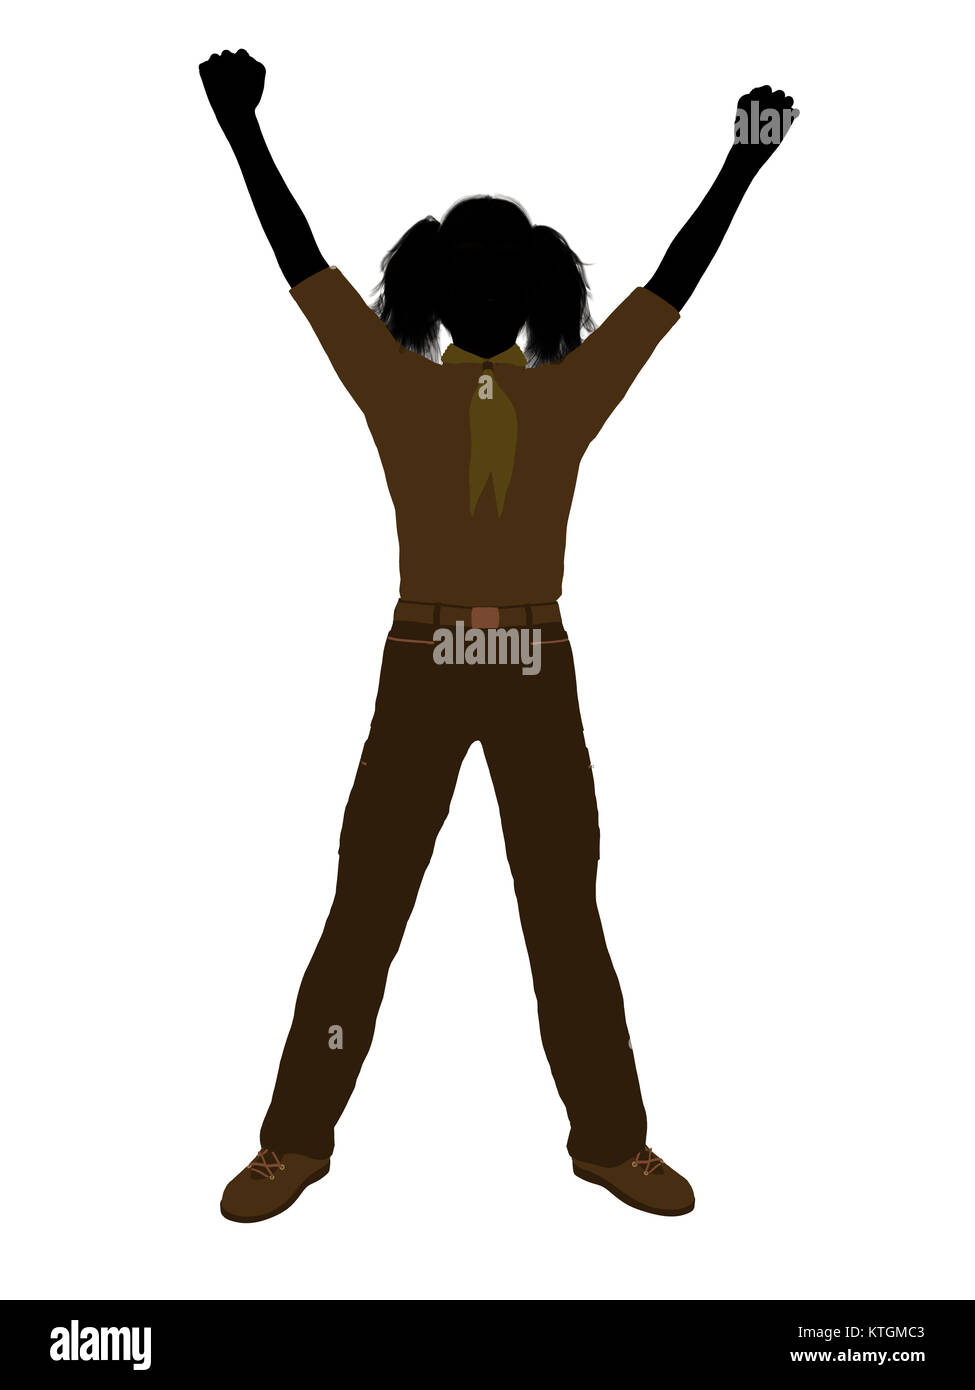 Girl scout silhouette dressed in pants on a white background - Stock Image